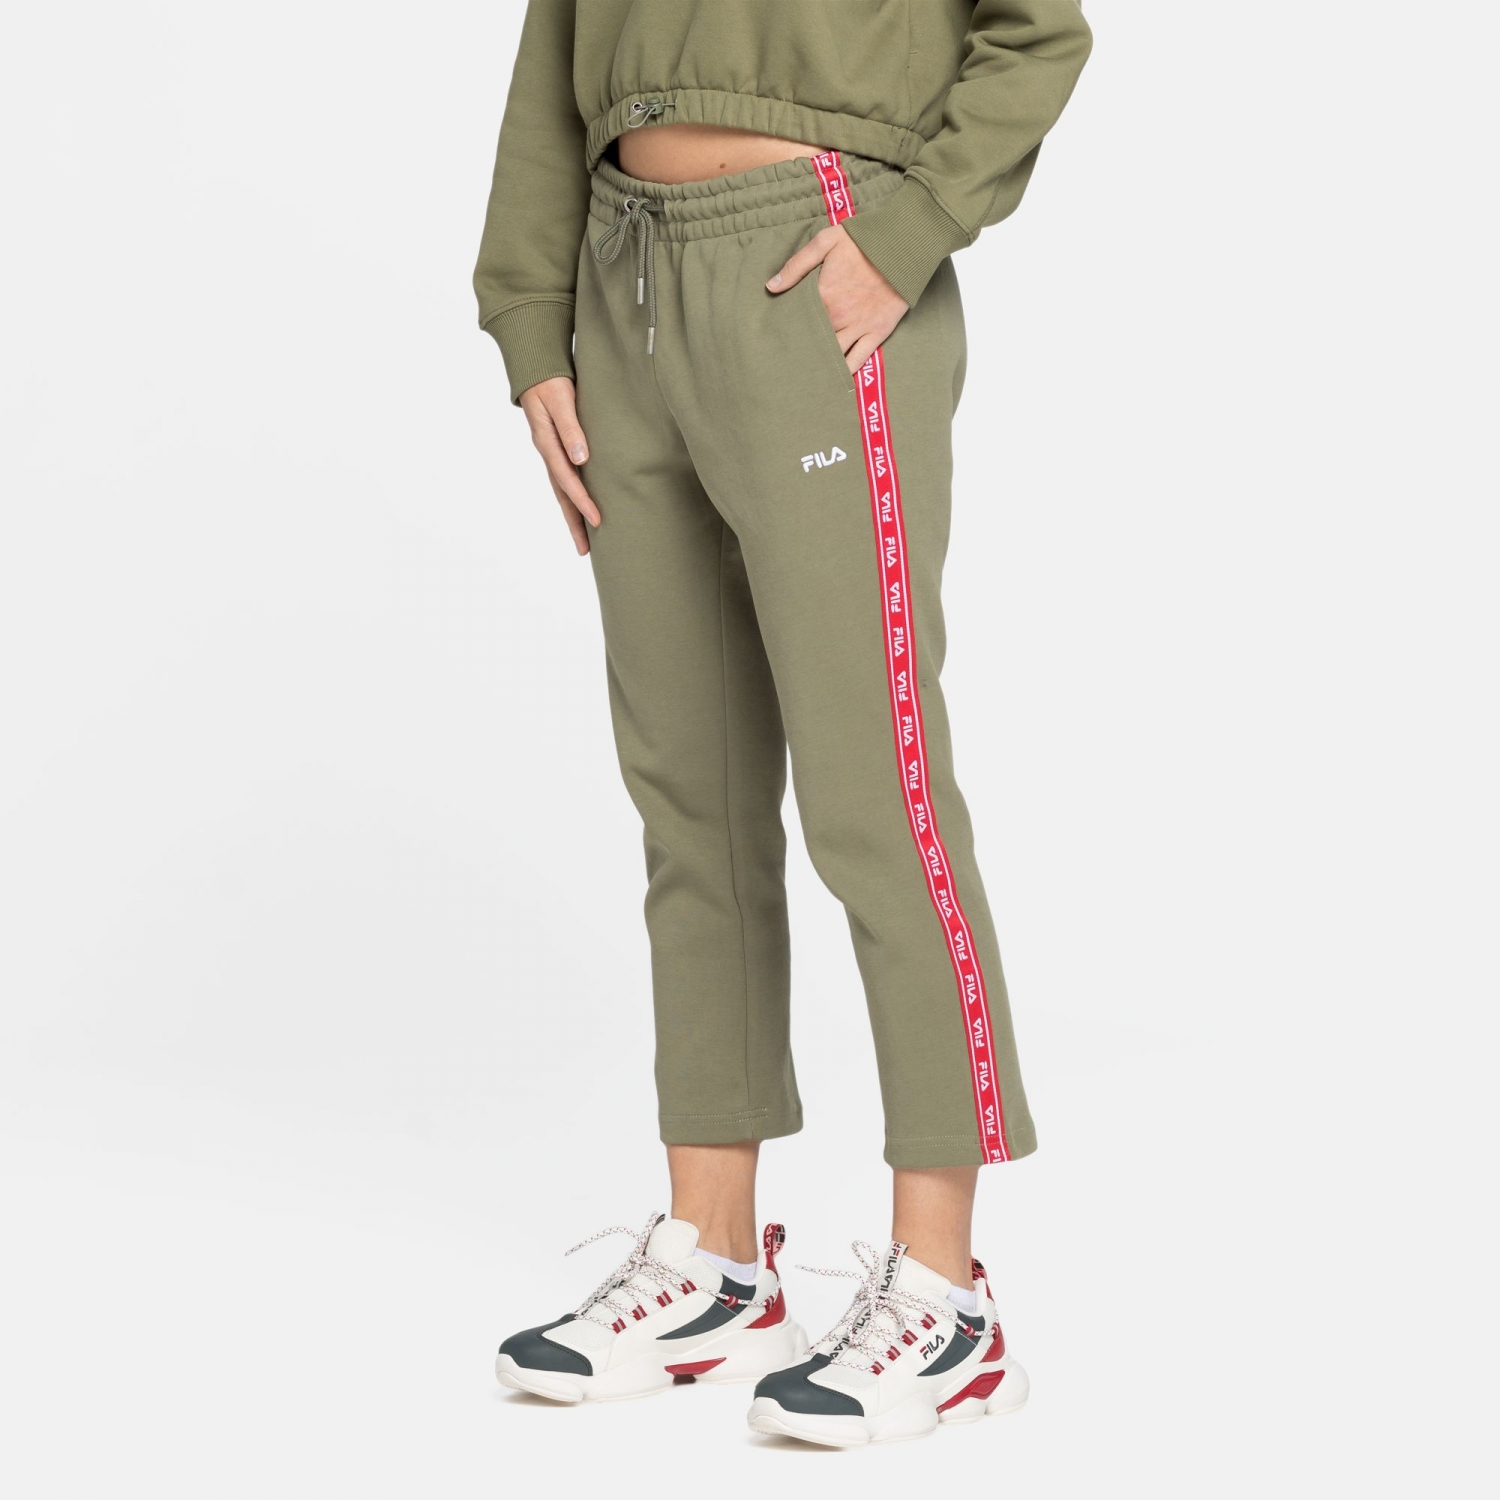 Fila Urvi Sweat Pants Bild 1